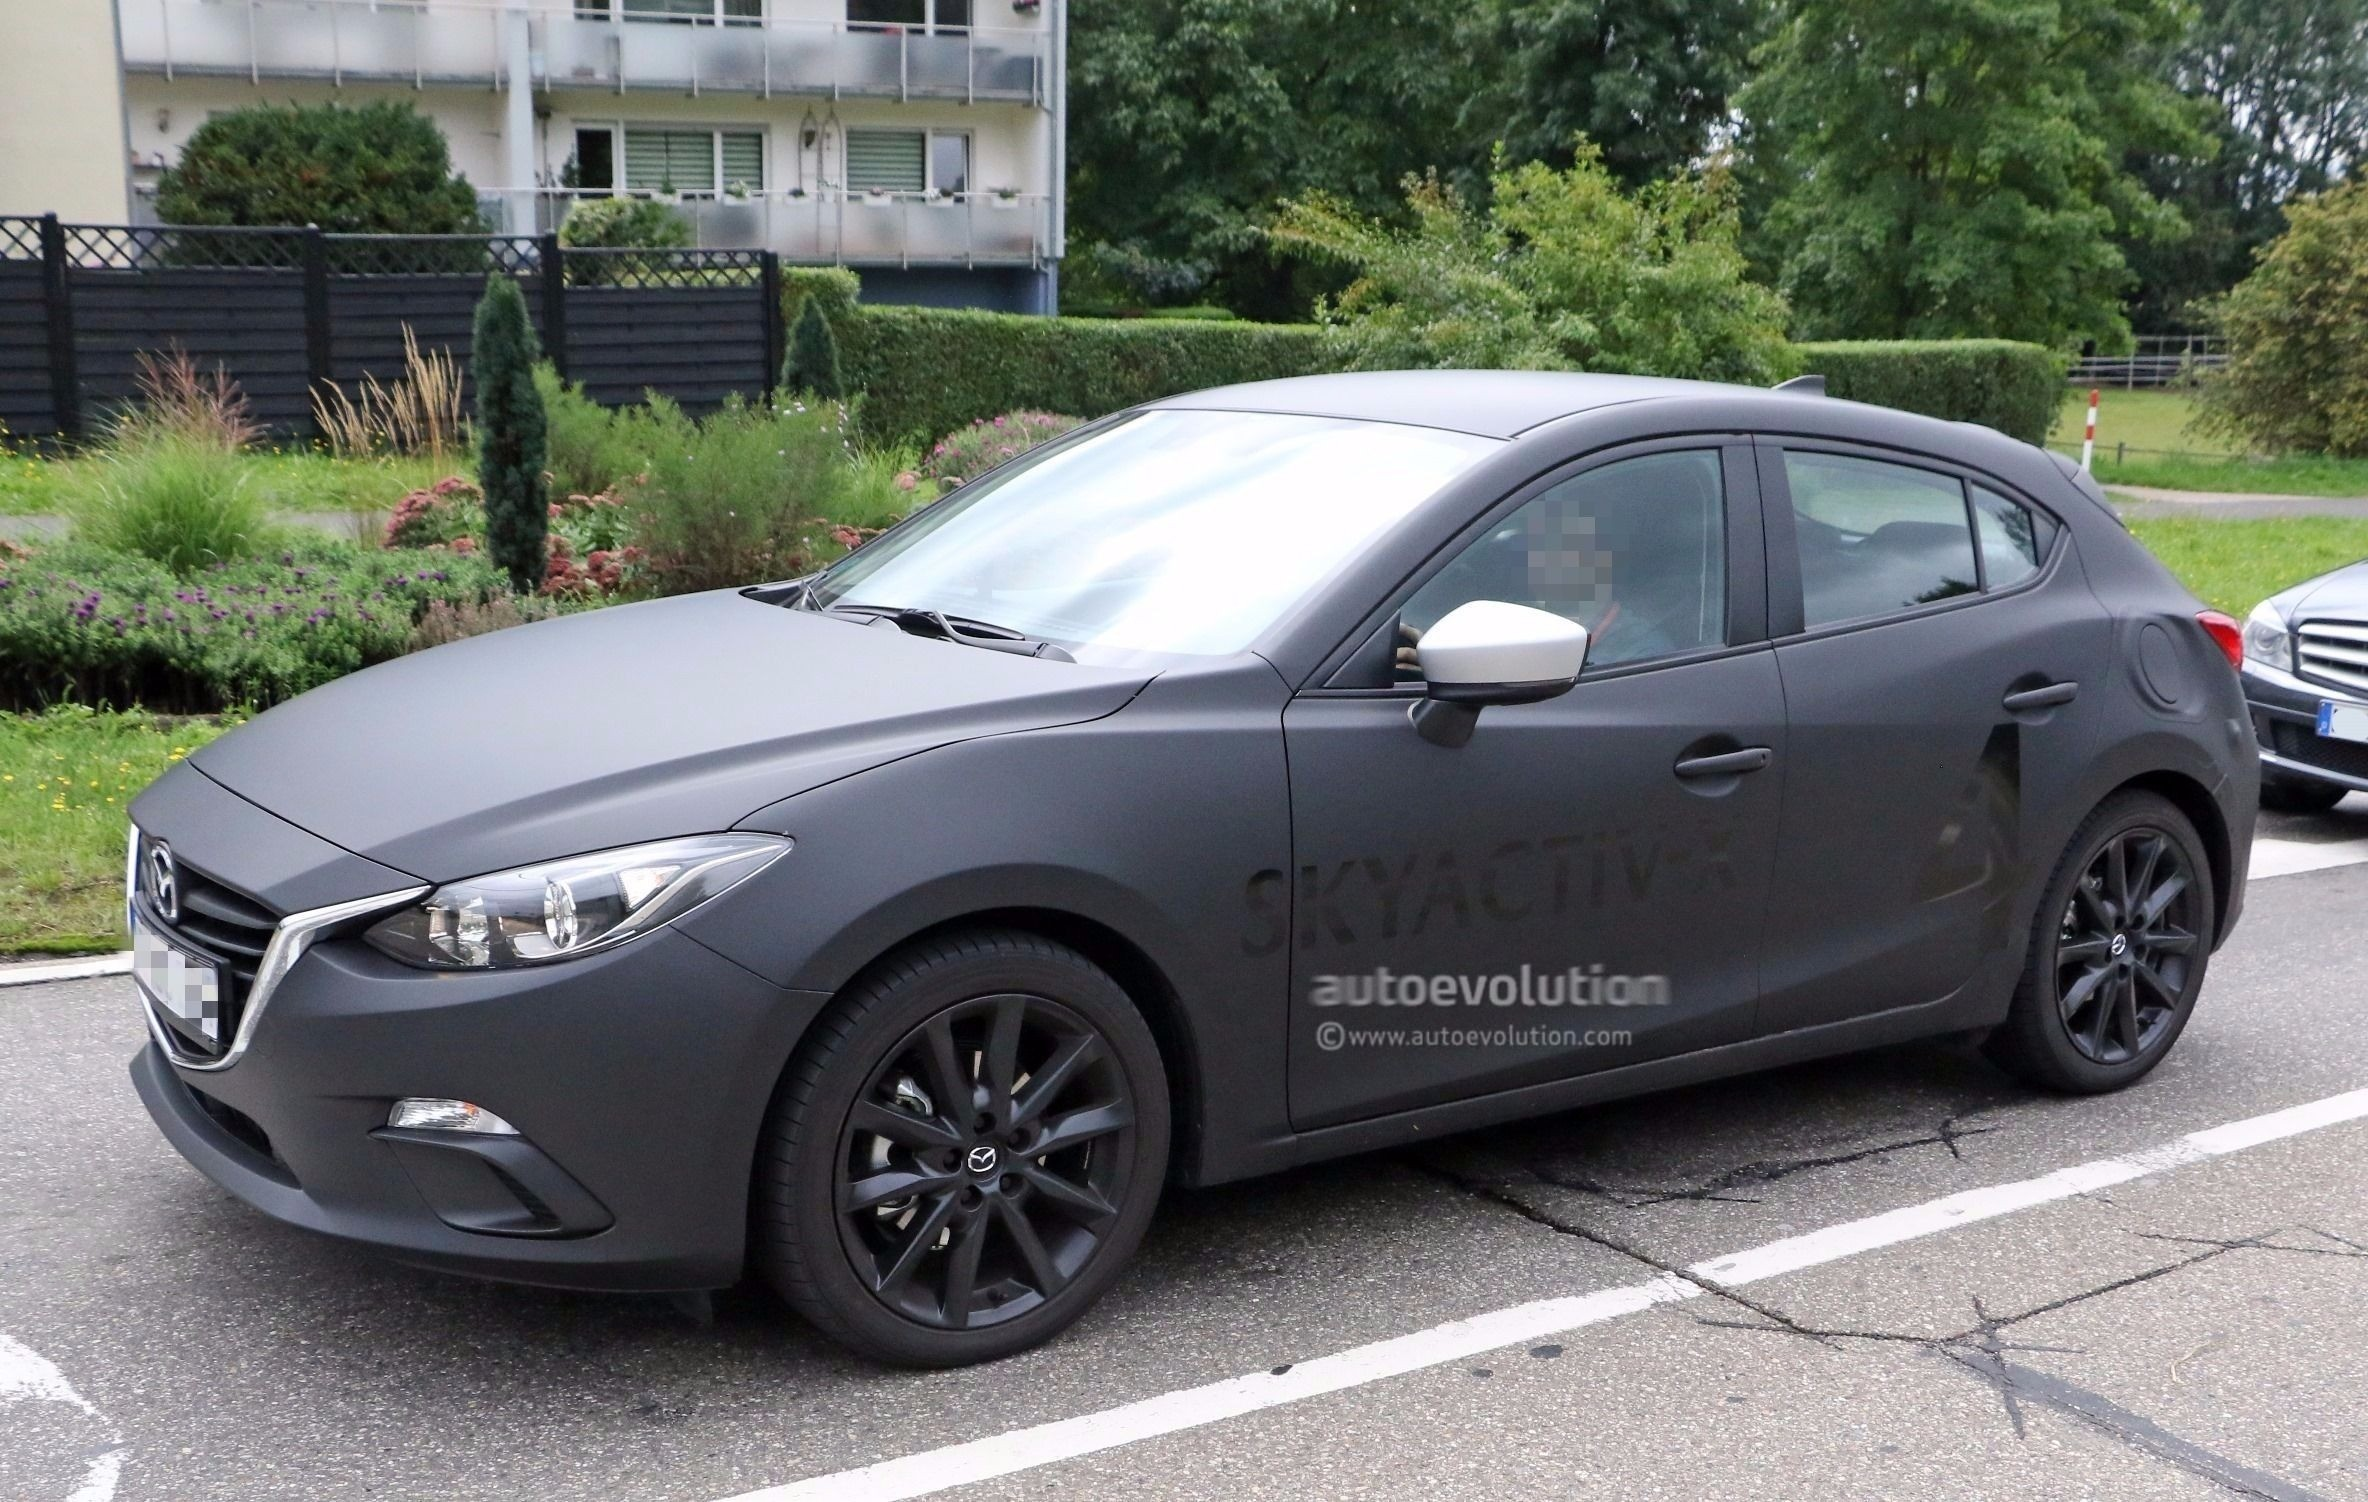 spyshots 2019 mazda3 skyactiv x mule testing with 2017 model s body shell autoevolution. Black Bedroom Furniture Sets. Home Design Ideas